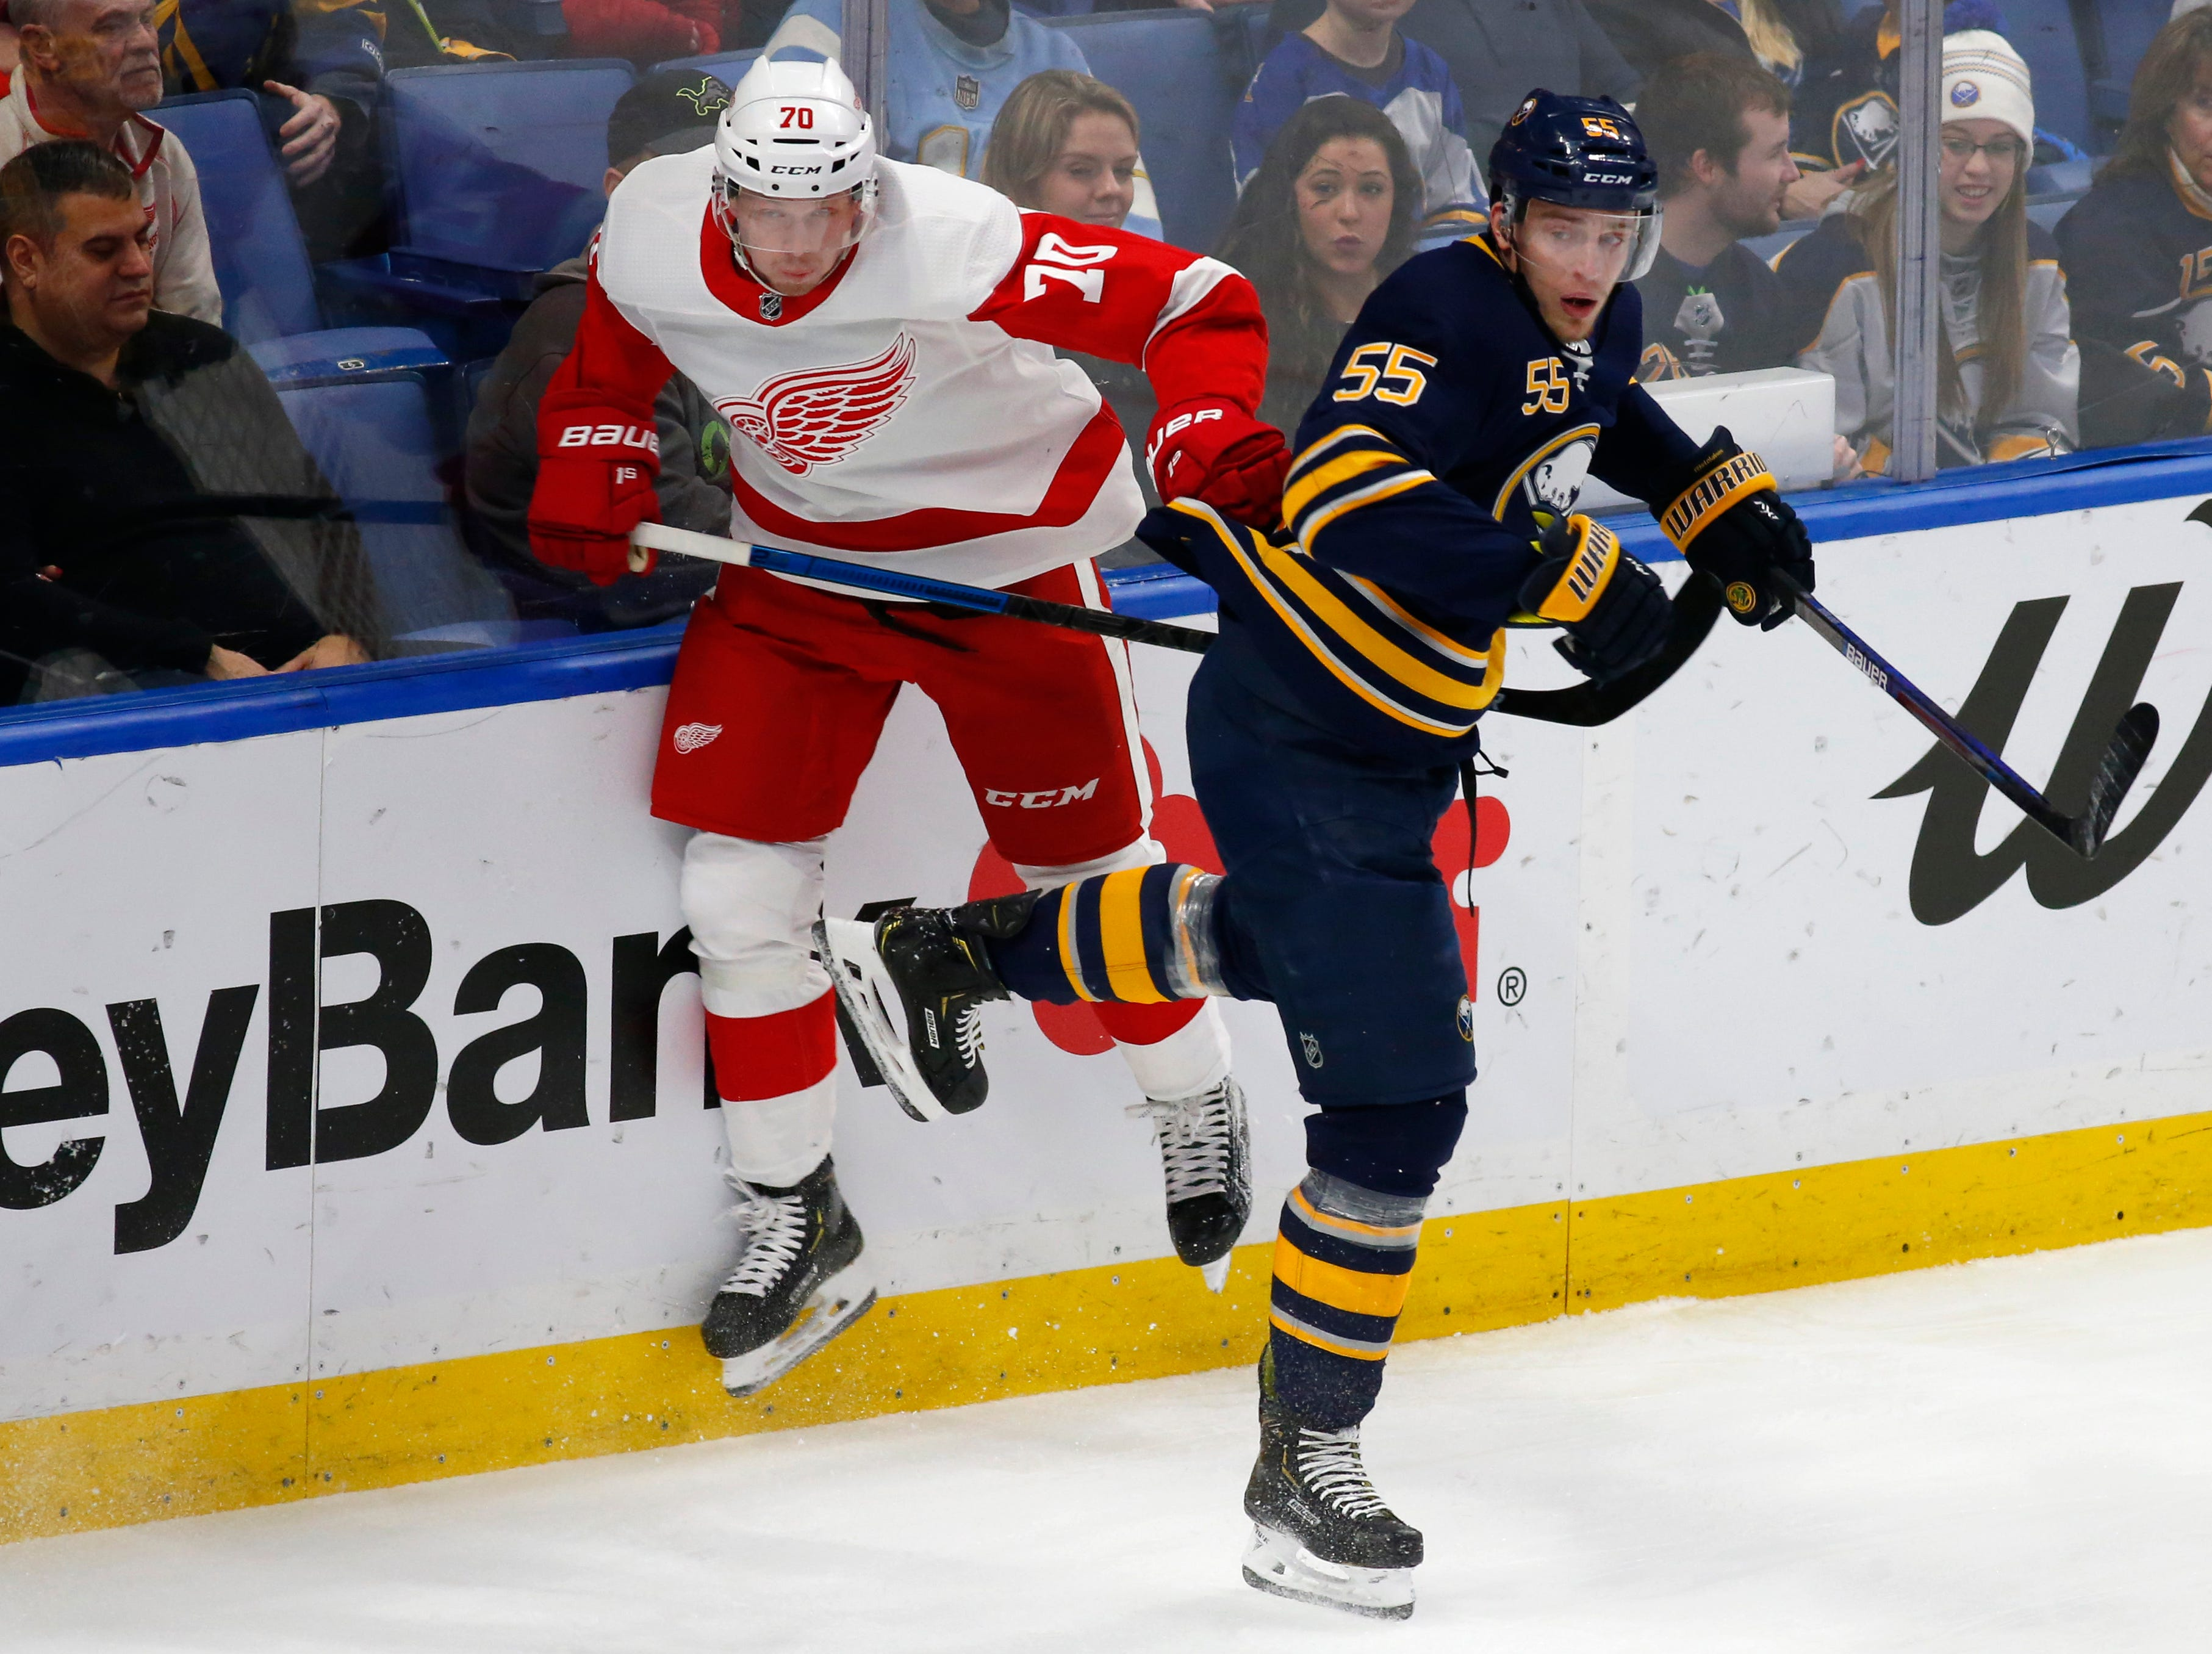 Buffalo Sabres defenseman Rasmus Ristolainen (55) and Detroit Red Wings forward Christoffer Ehn (70) collide during the first period of an NHL hockey game, Saturday, Feb. 9, 2019, in Buffalo N.Y. (AP Photo/Jeffrey T. Barnes)